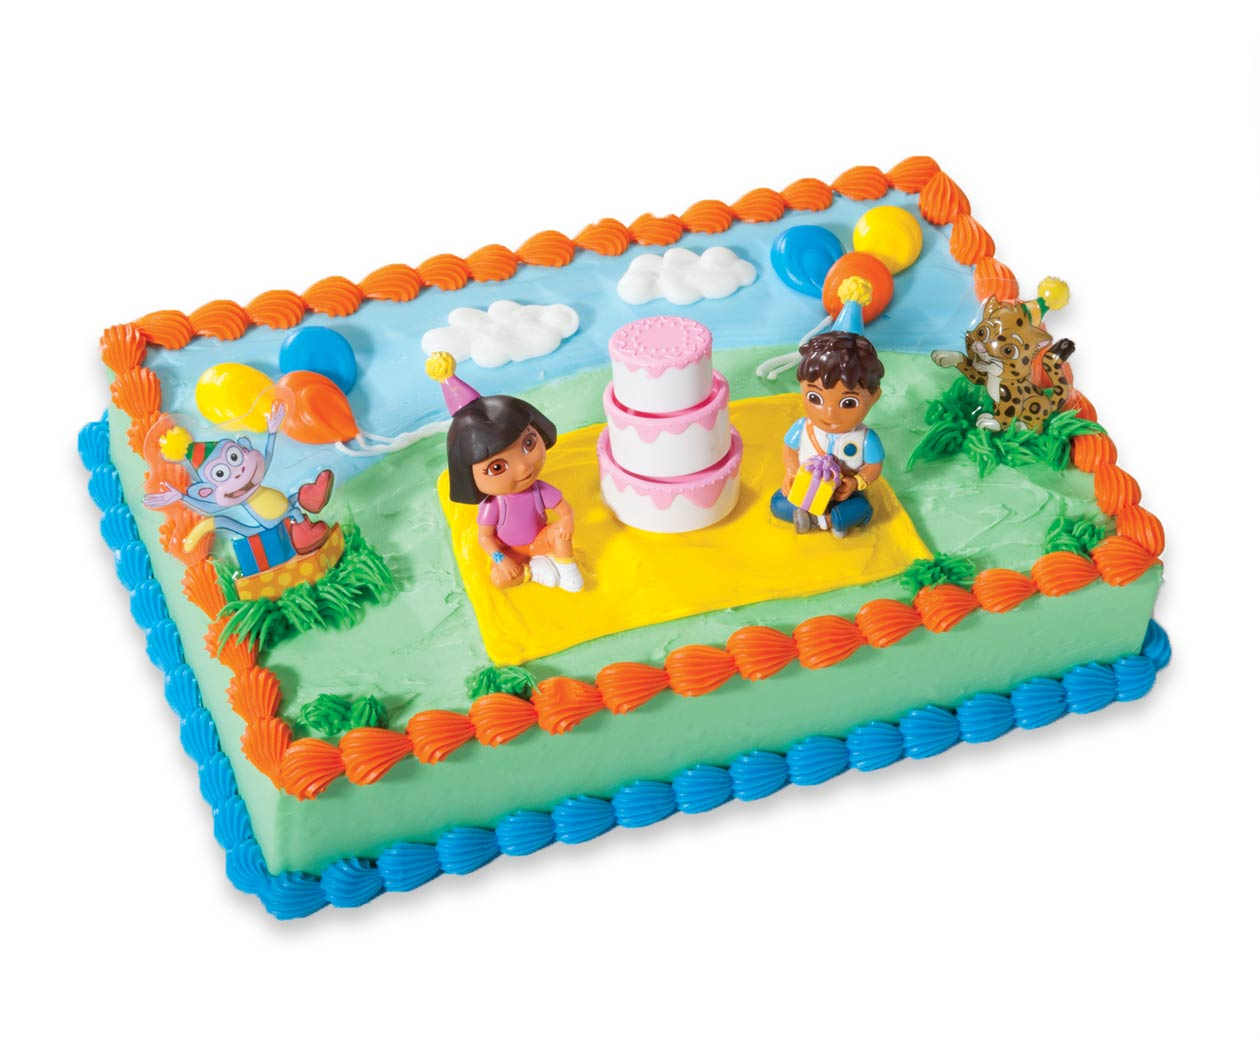 Little Mermaid Birthday Cake Safeway Image Inspiration of Cake and